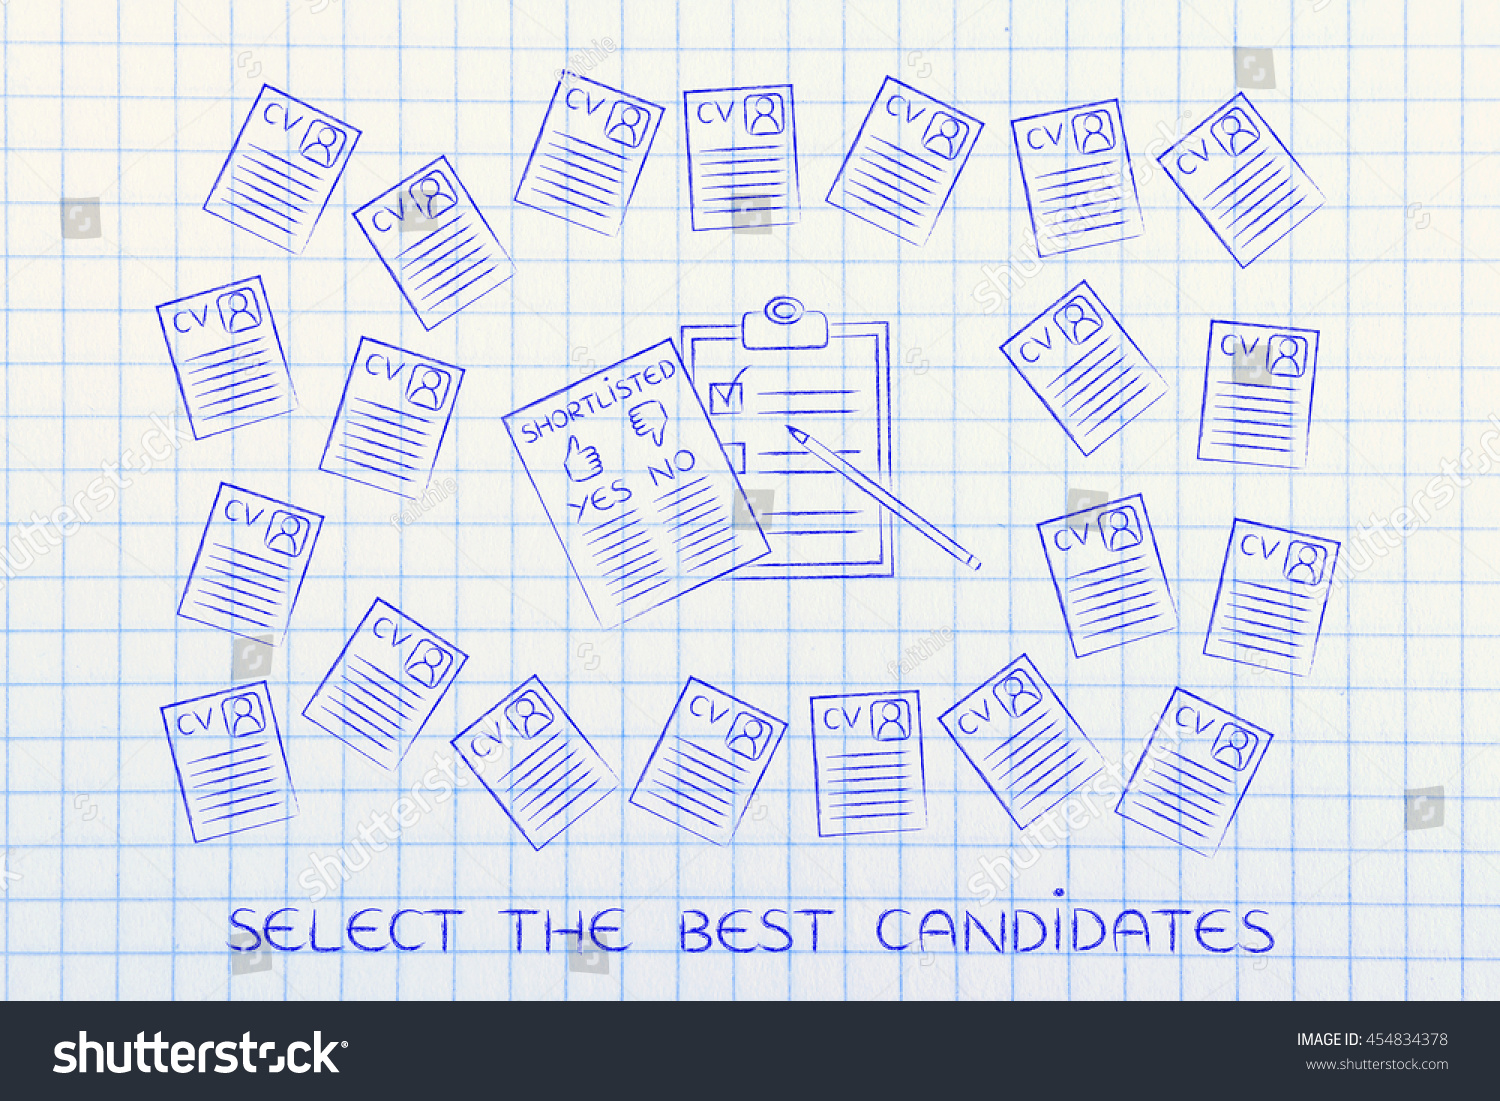 How To Shortlist Resumes. skills loading cv and shortlist of ...